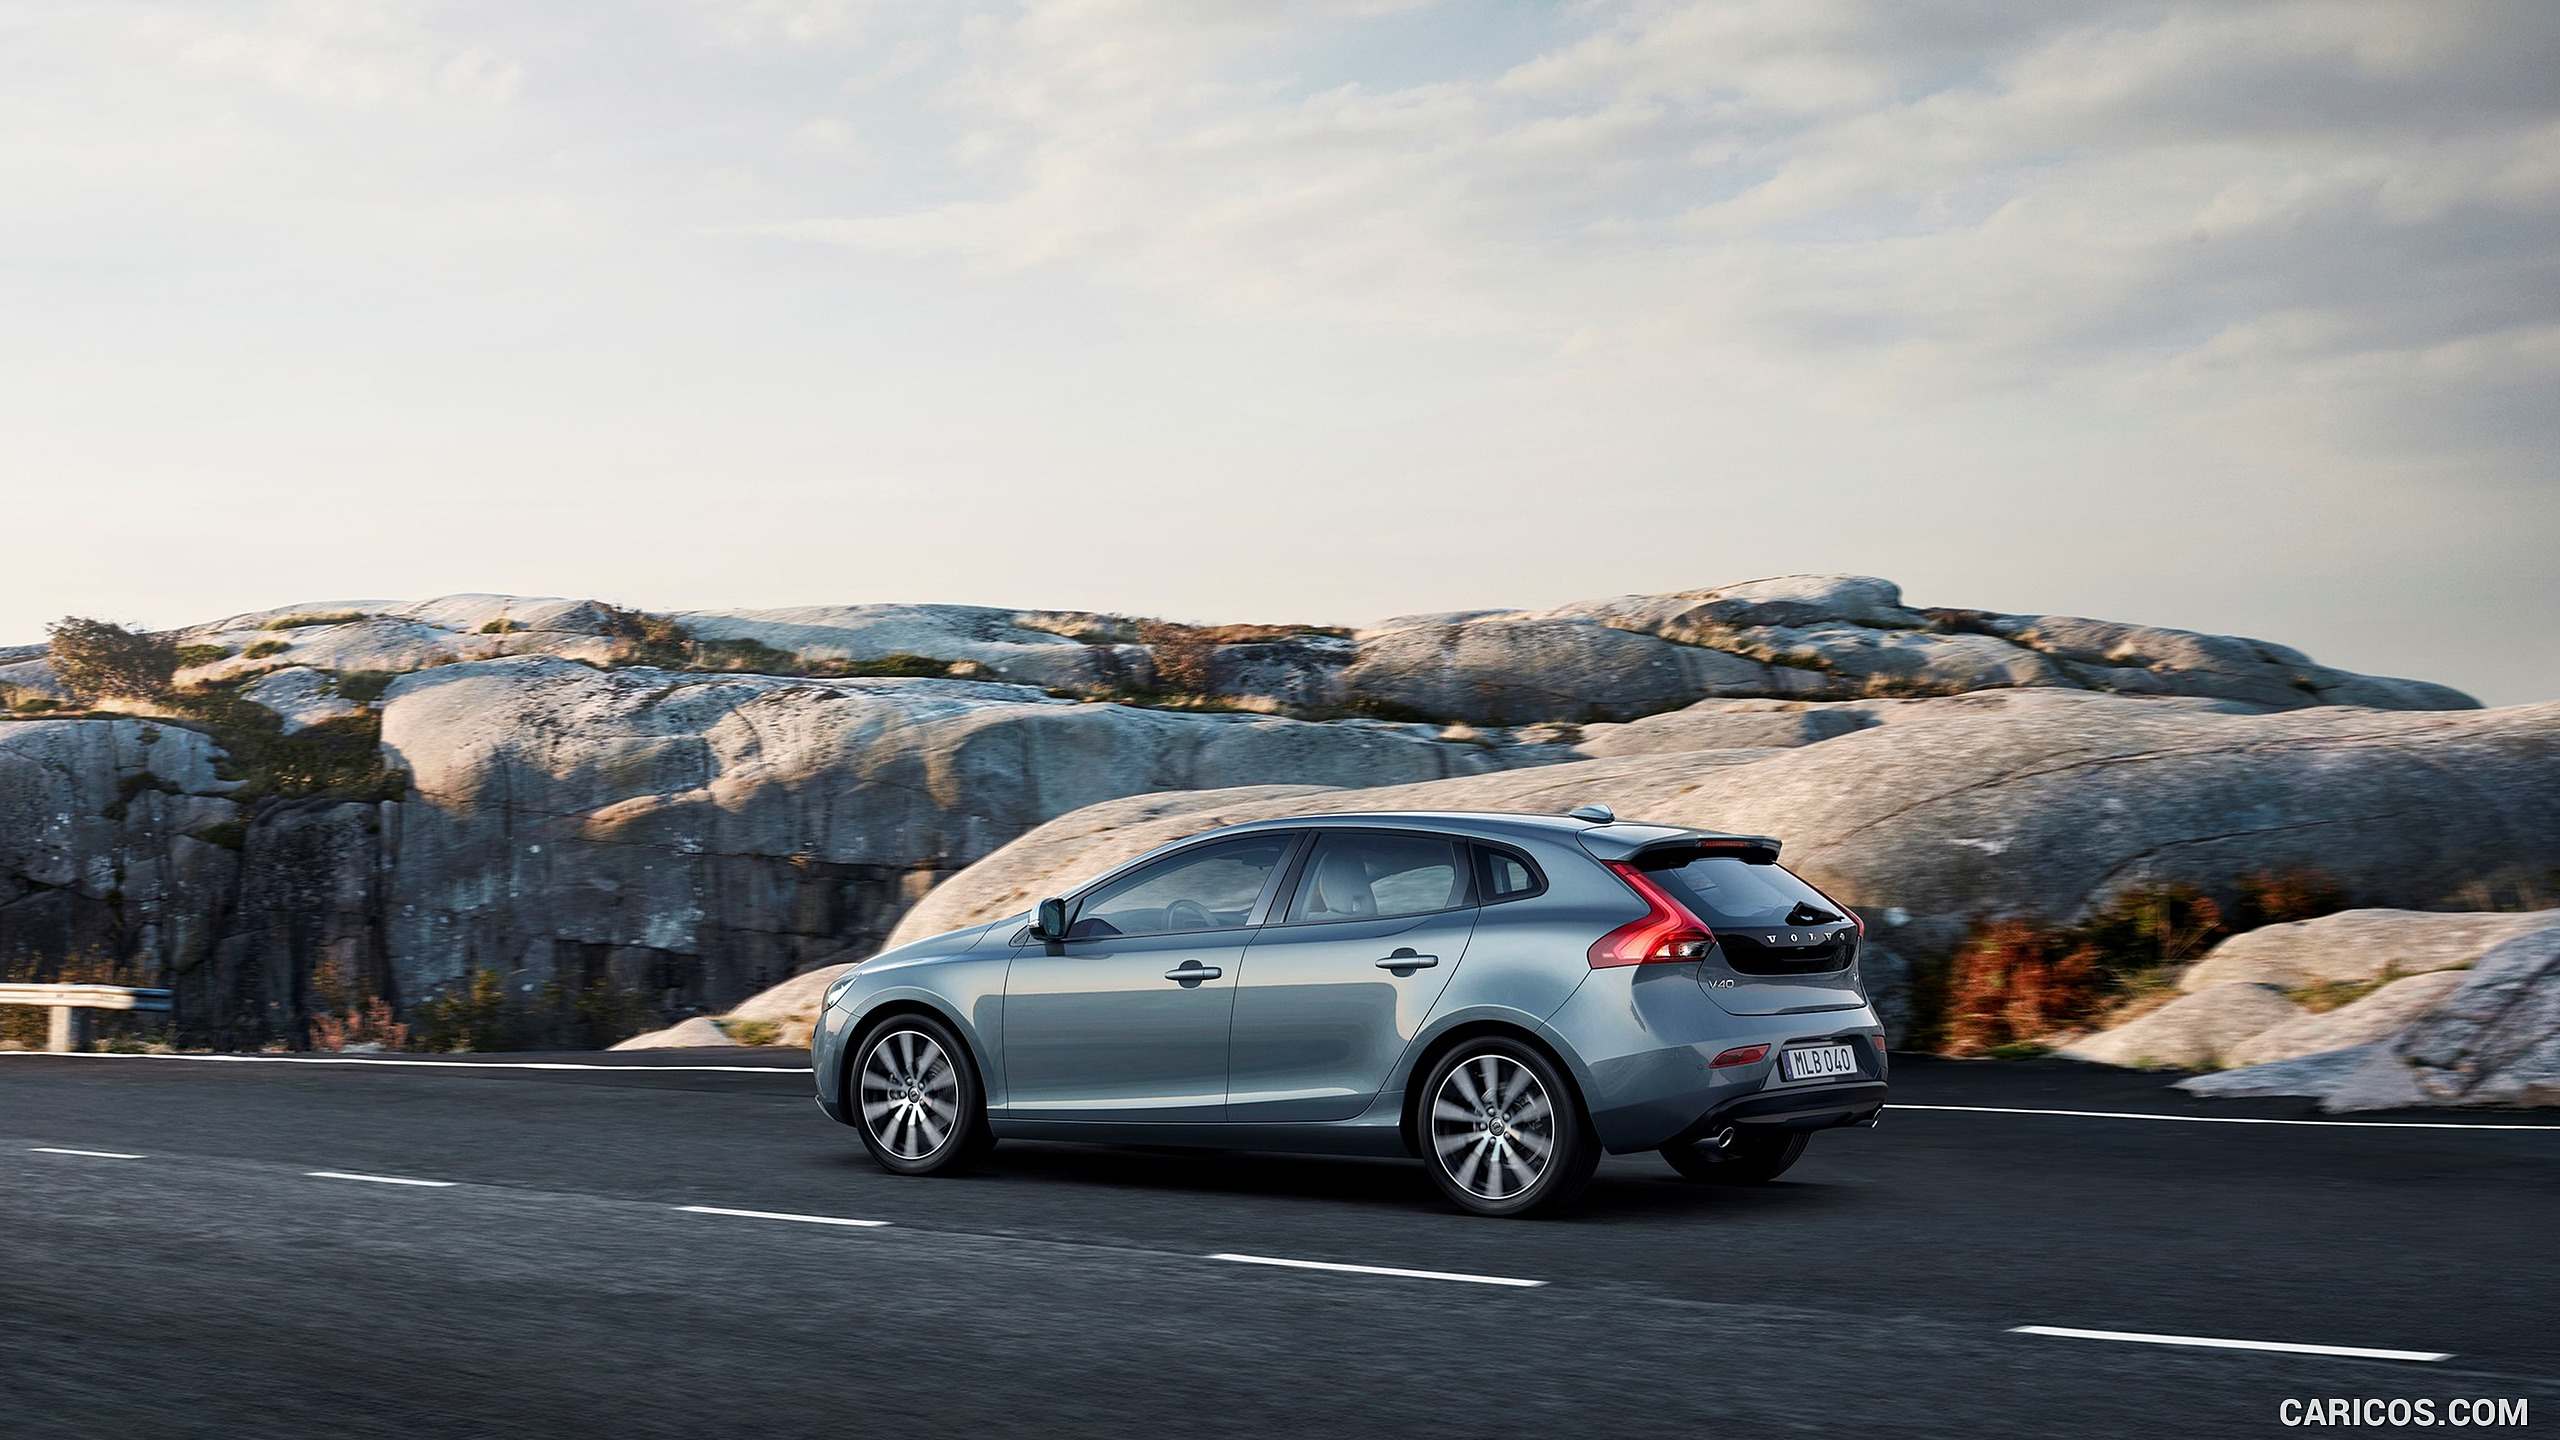 2017 Volvo V40 T4 Momentum   Side HD Wallpaper 5 2560x1440